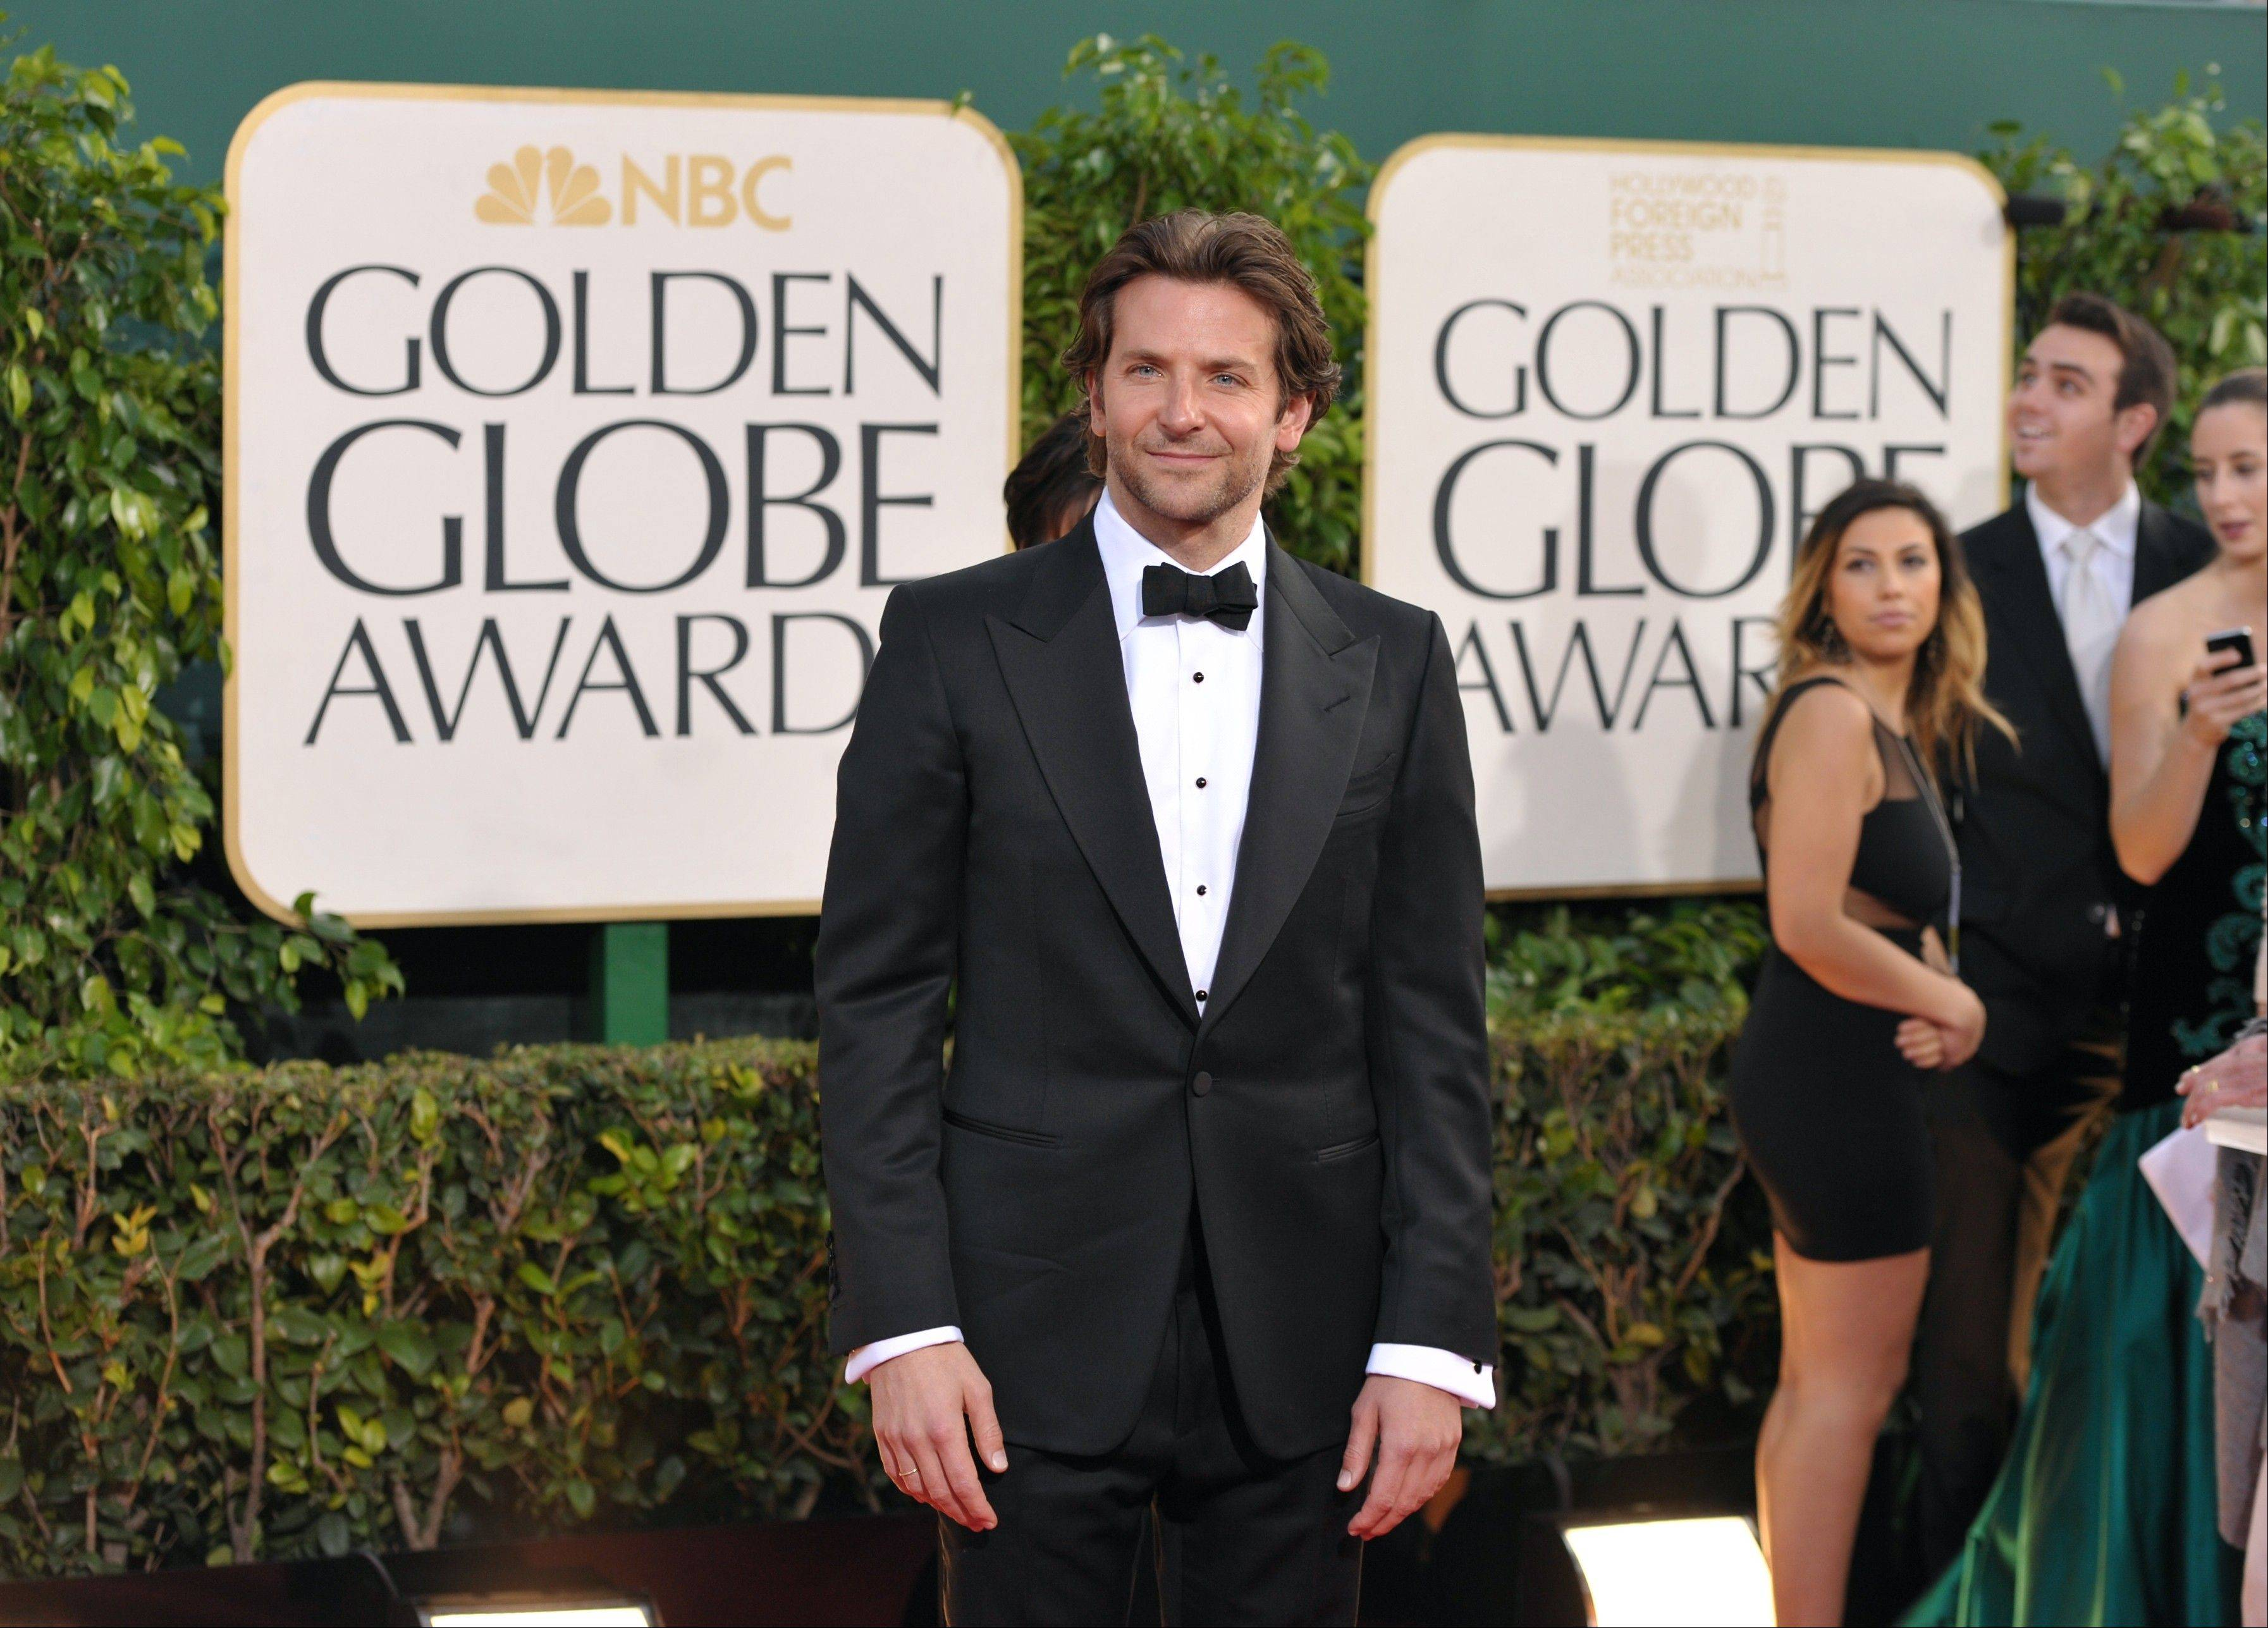 """Silver Linings Playbook"" star Bradley Cooper arrives at the 70th Annual Golden Globe Awards at the Beverly Hilton Hotel on Sunday Jan. 13, 2013, in Beverly Hills, Calif."